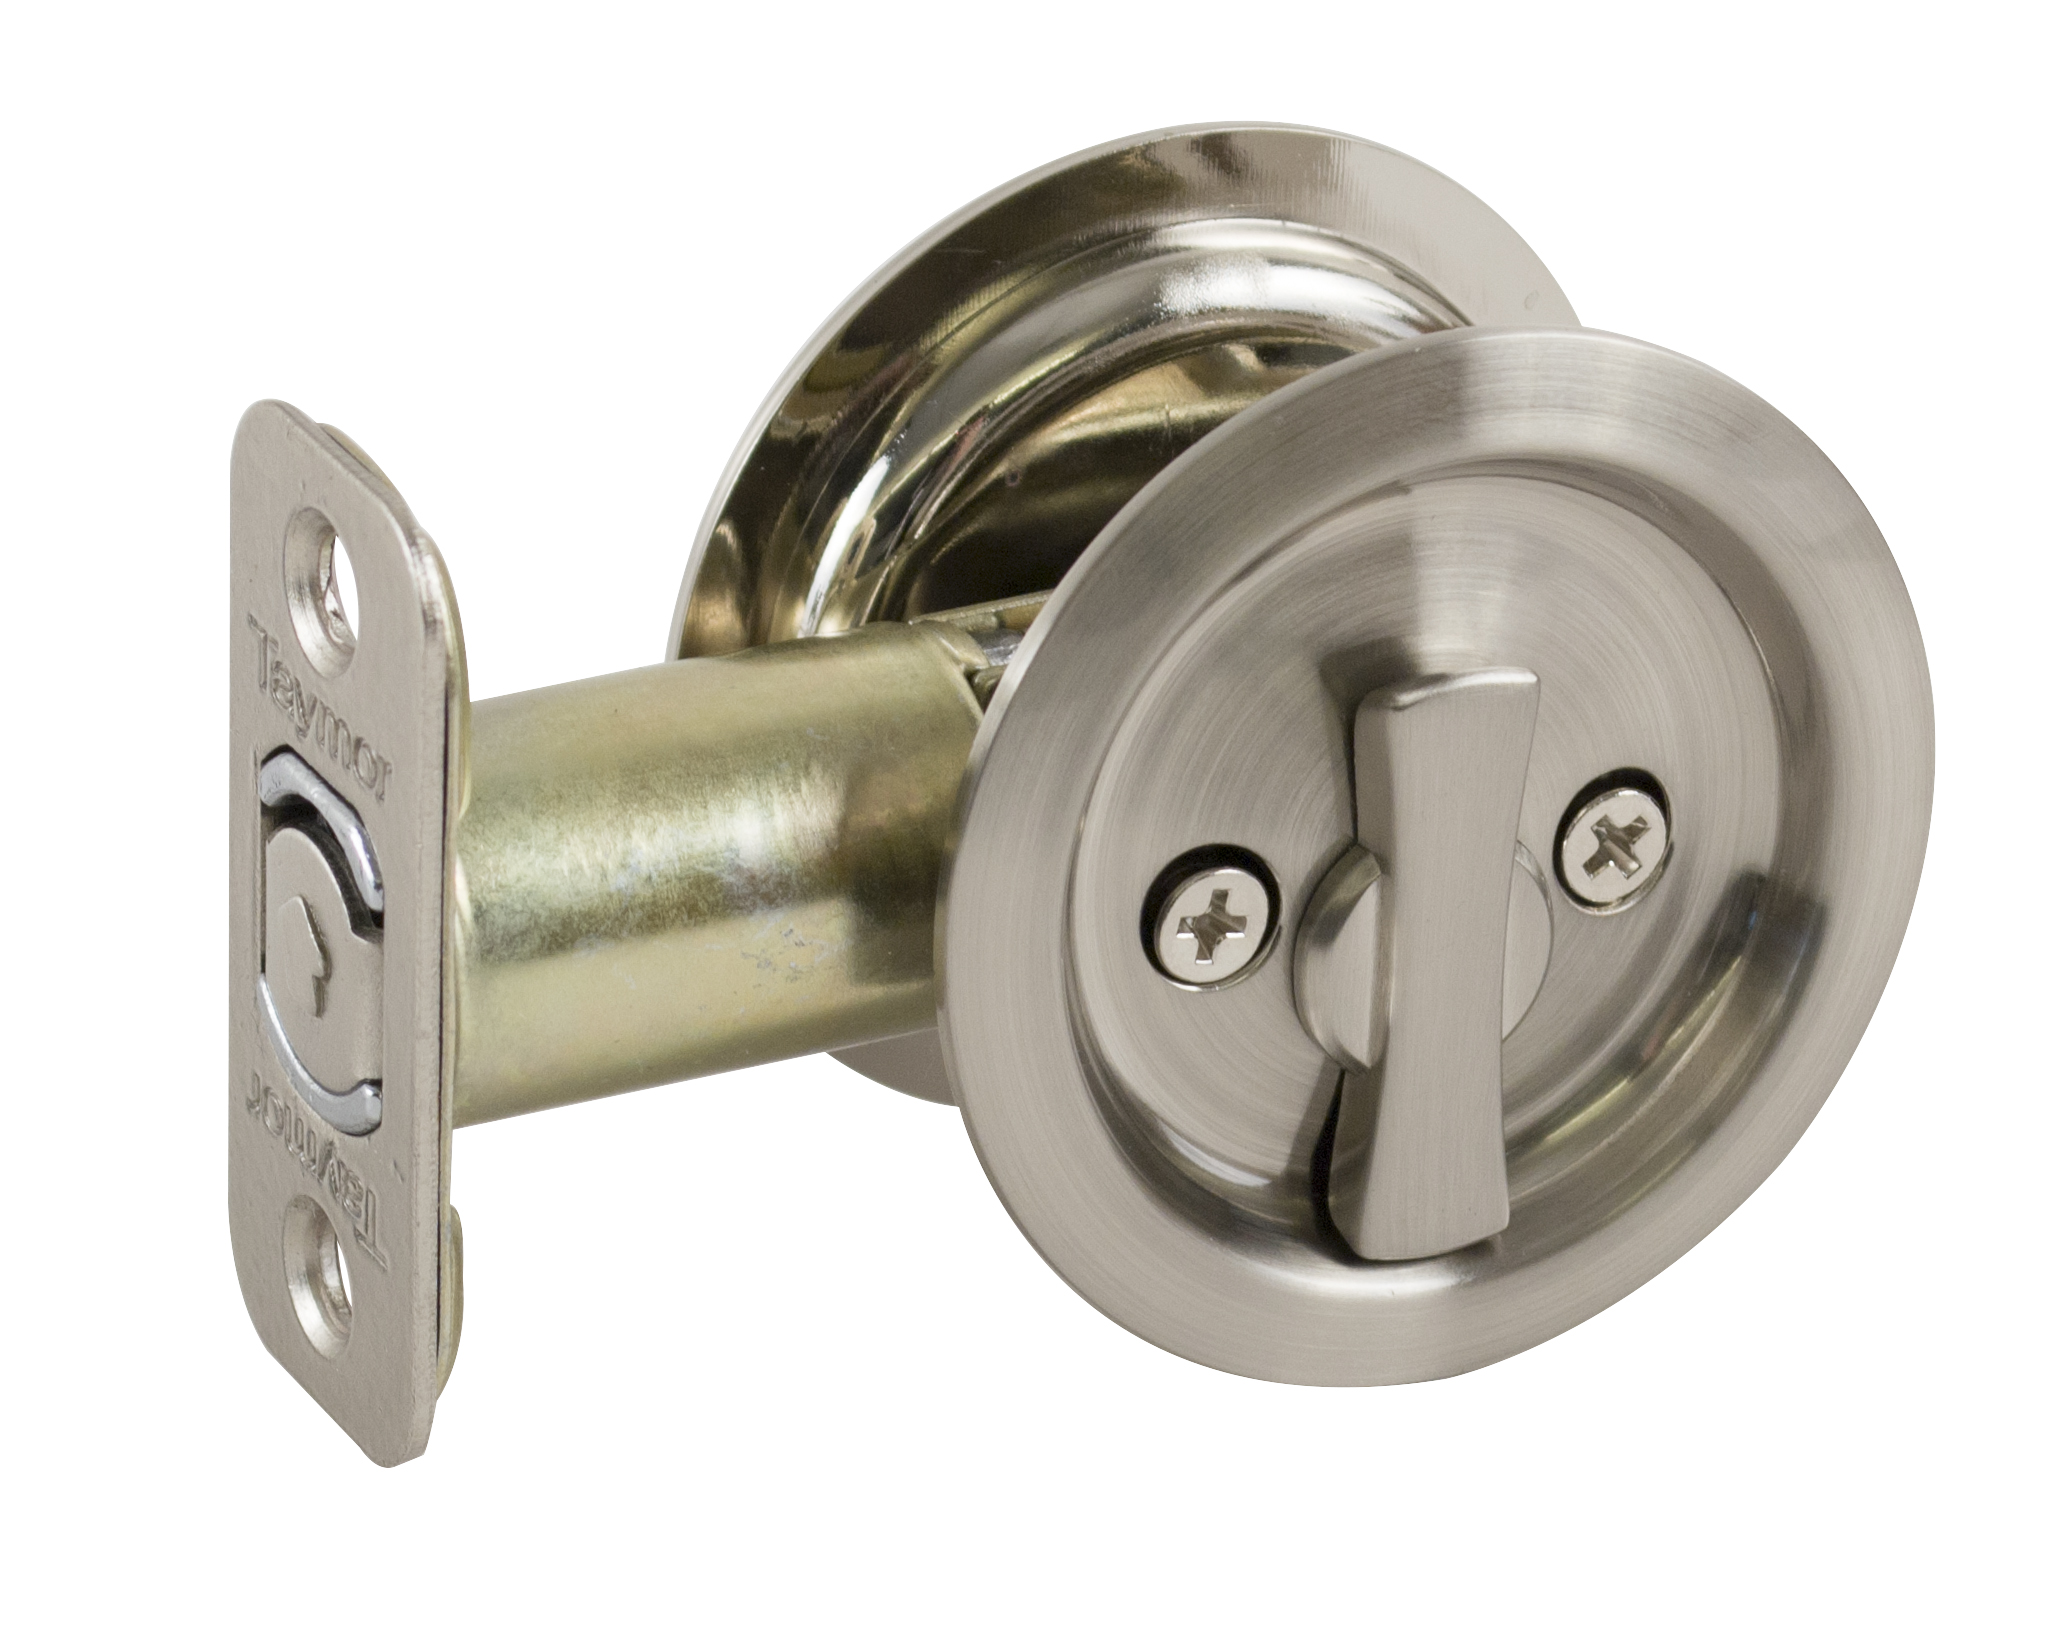 Round Sliding Door Lock - Sliding Door Lock